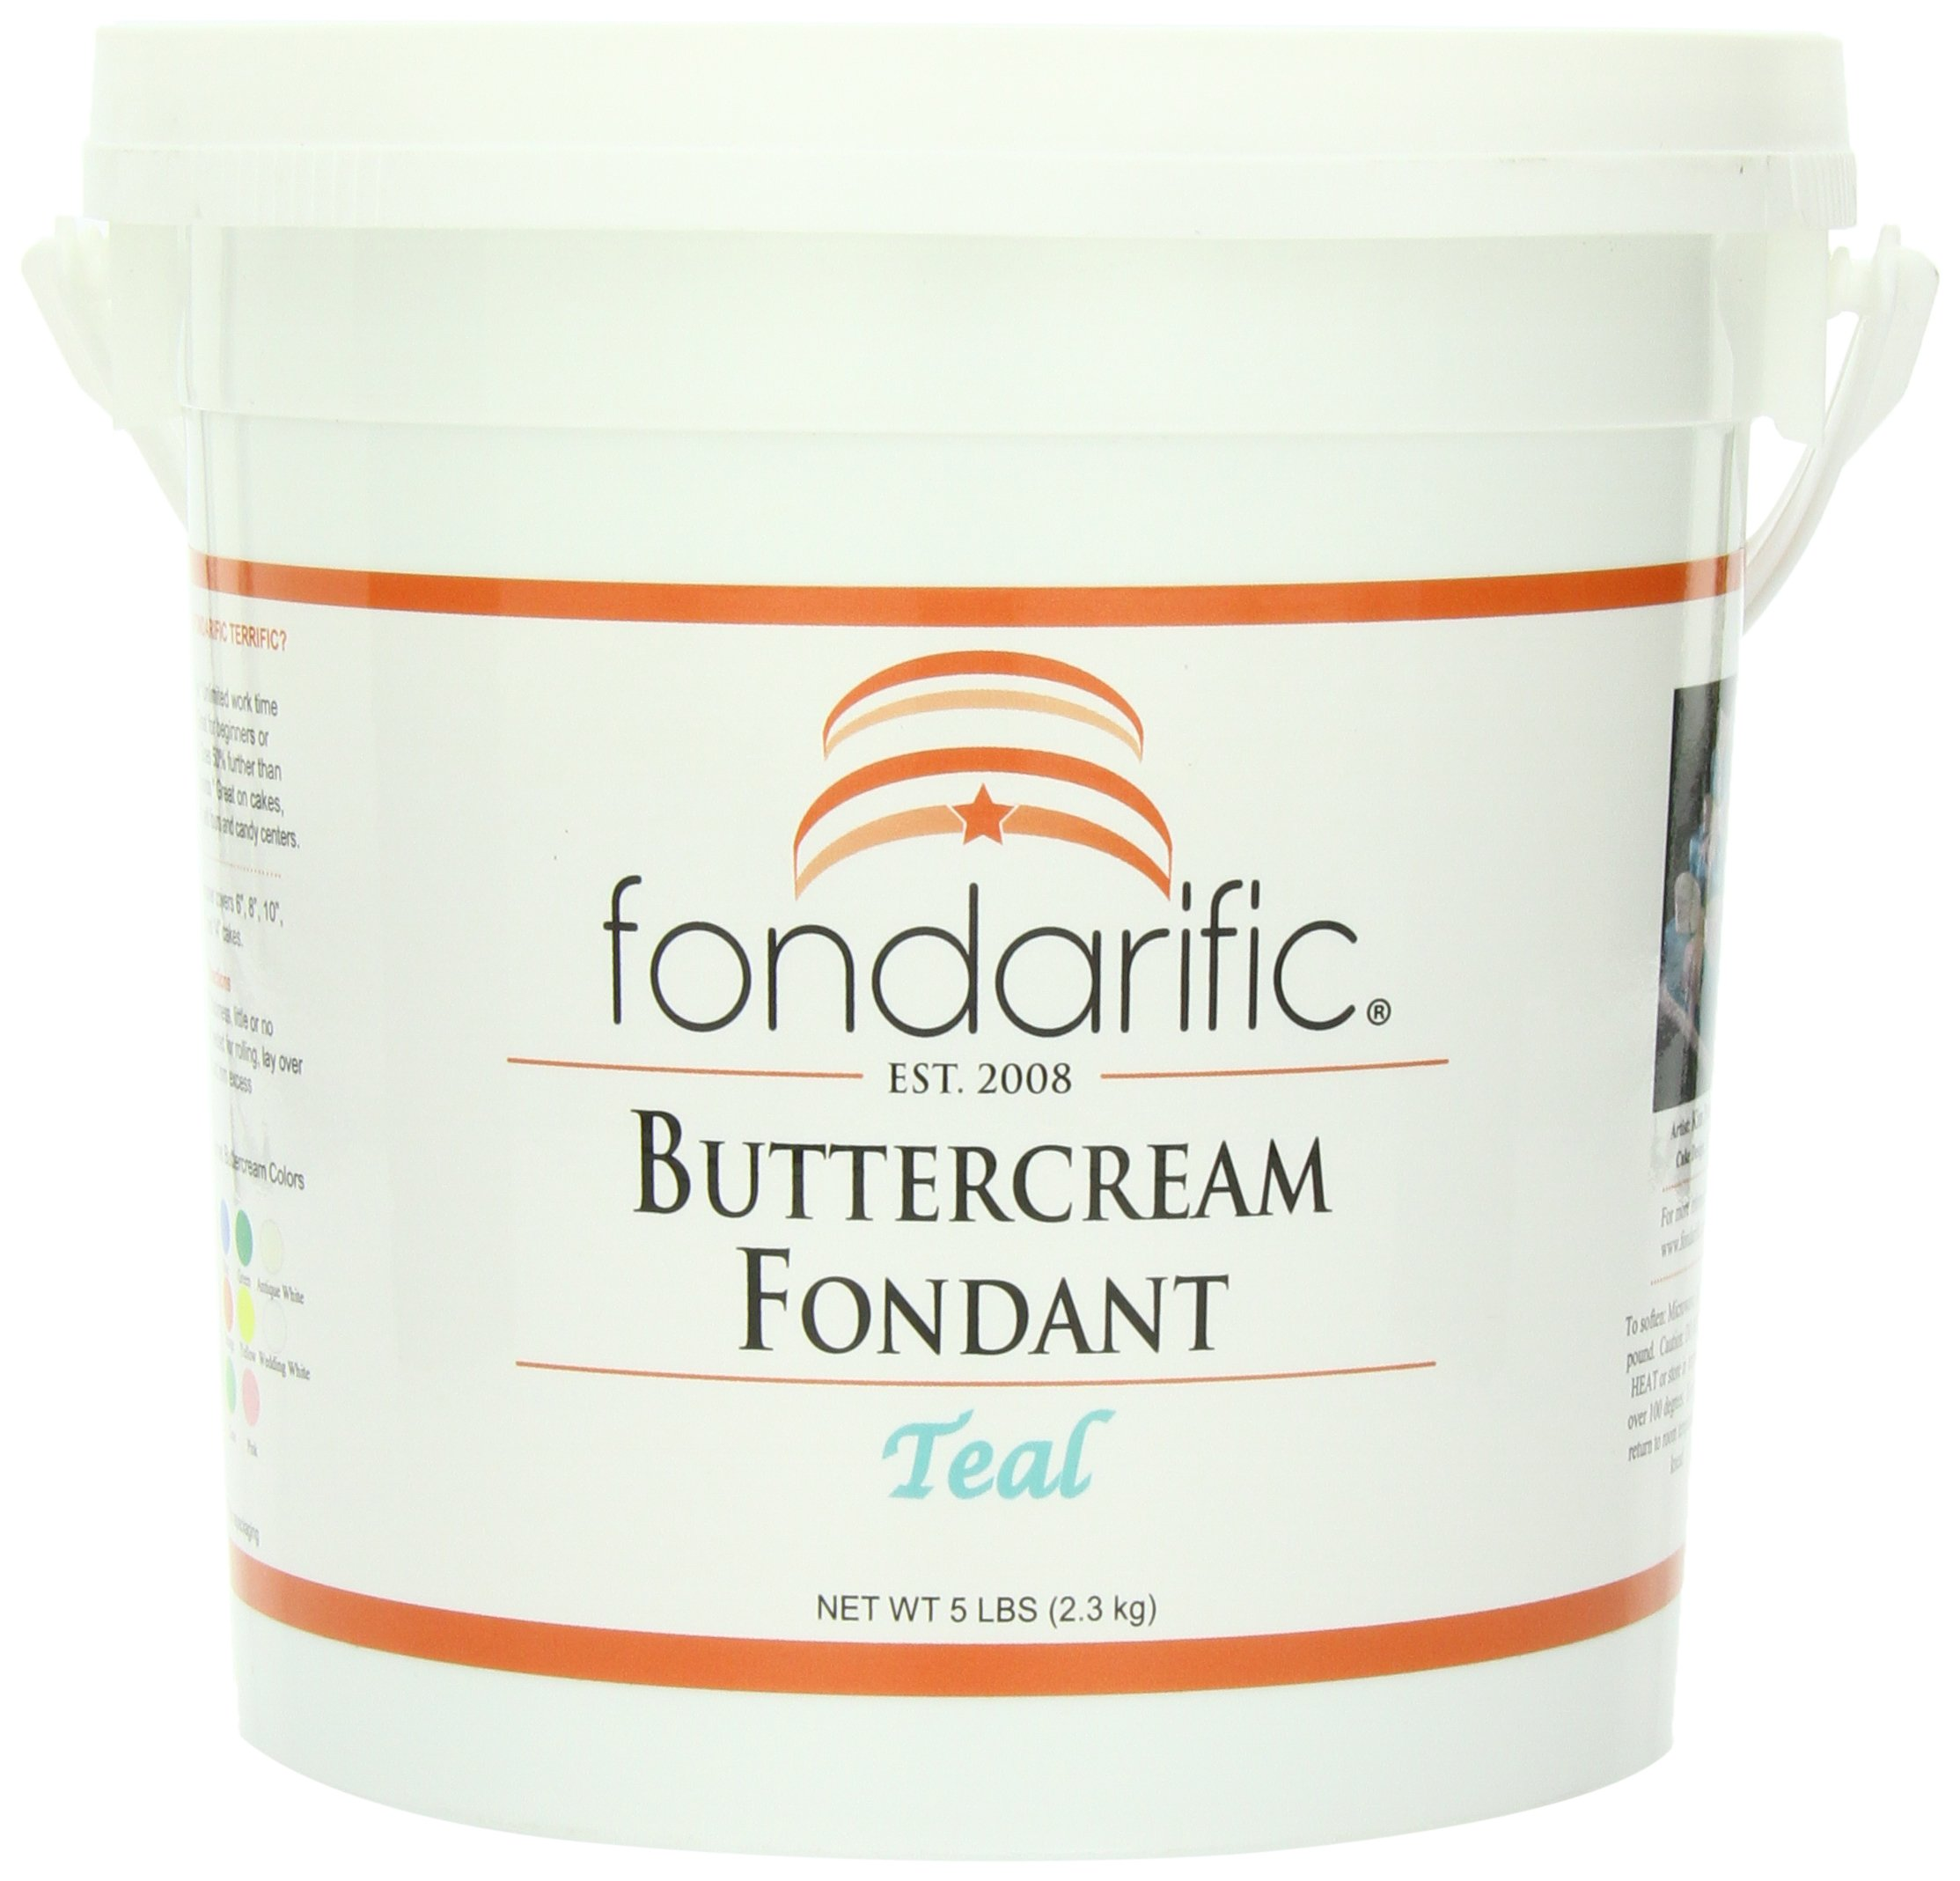 Fondarific Buttercream Teal Fondant, 5-Pounds